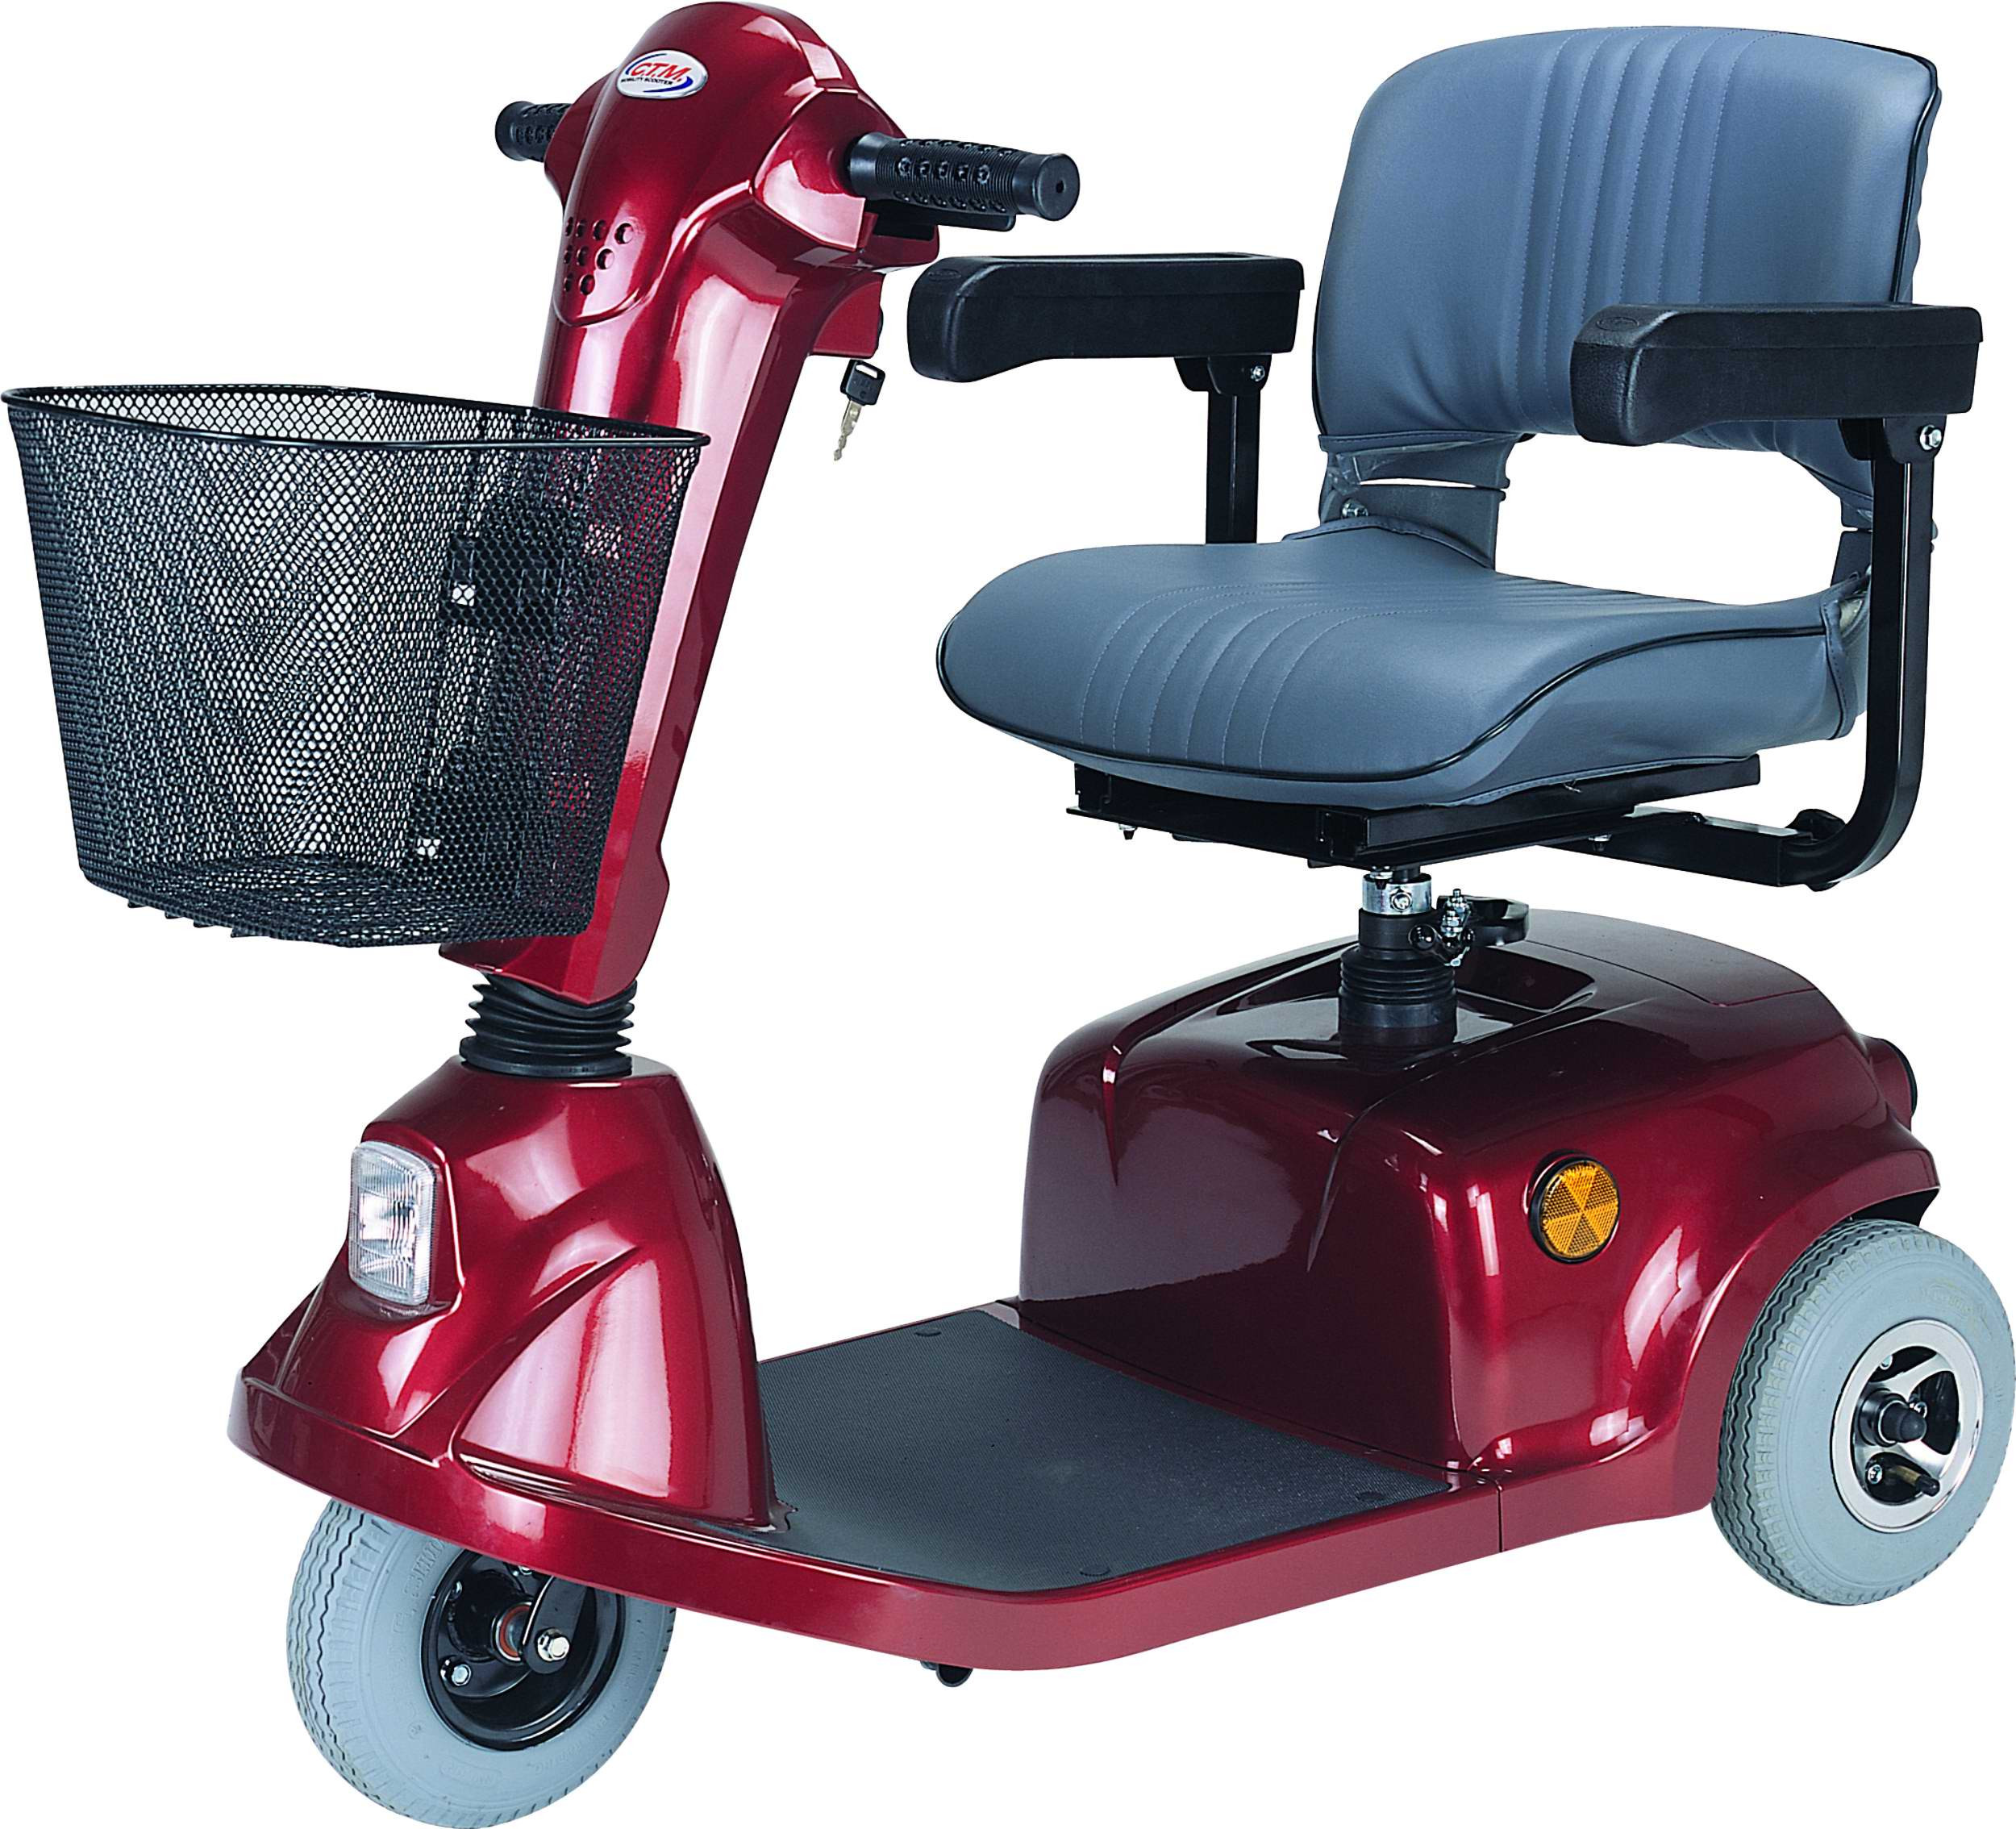 Mobility Scooters For Sale >> Ctm Homecare Mobility Scooters For Sale Factory Direct Pricing Tax